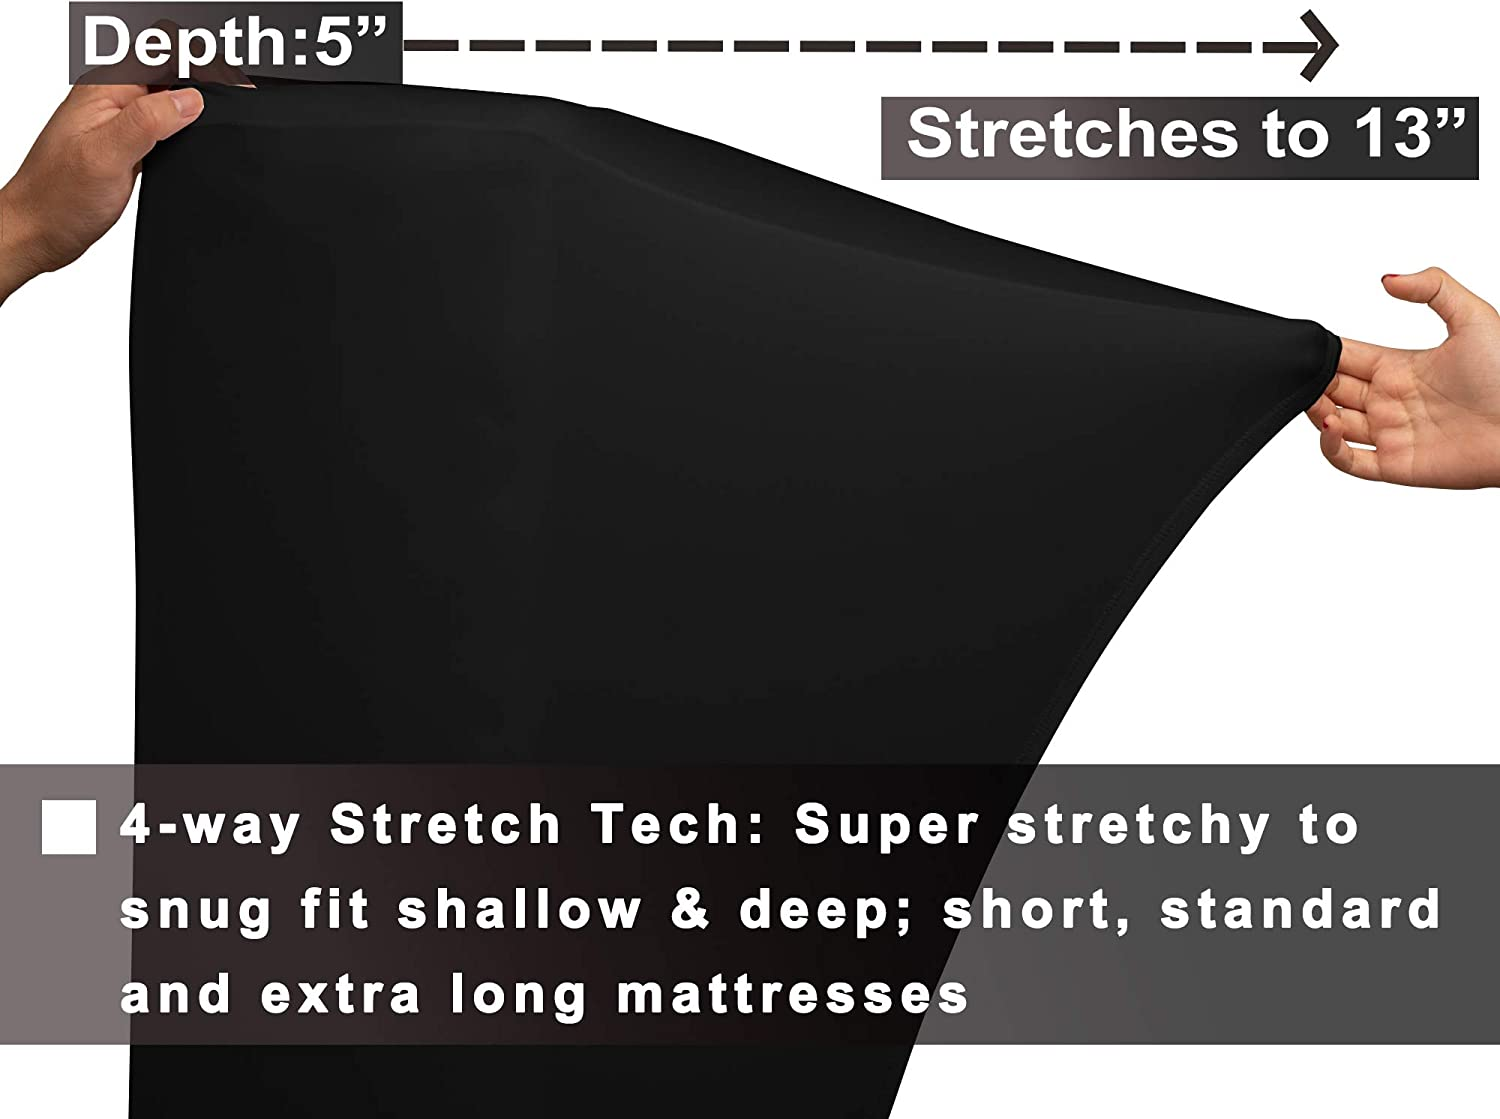 Barossa Design Twin Fitted Sheet Only: 4 Way Stretch Fit /& Soft T-Shirt Like Jersey Knit Twin Black Cooling Sheets for Night Sweats